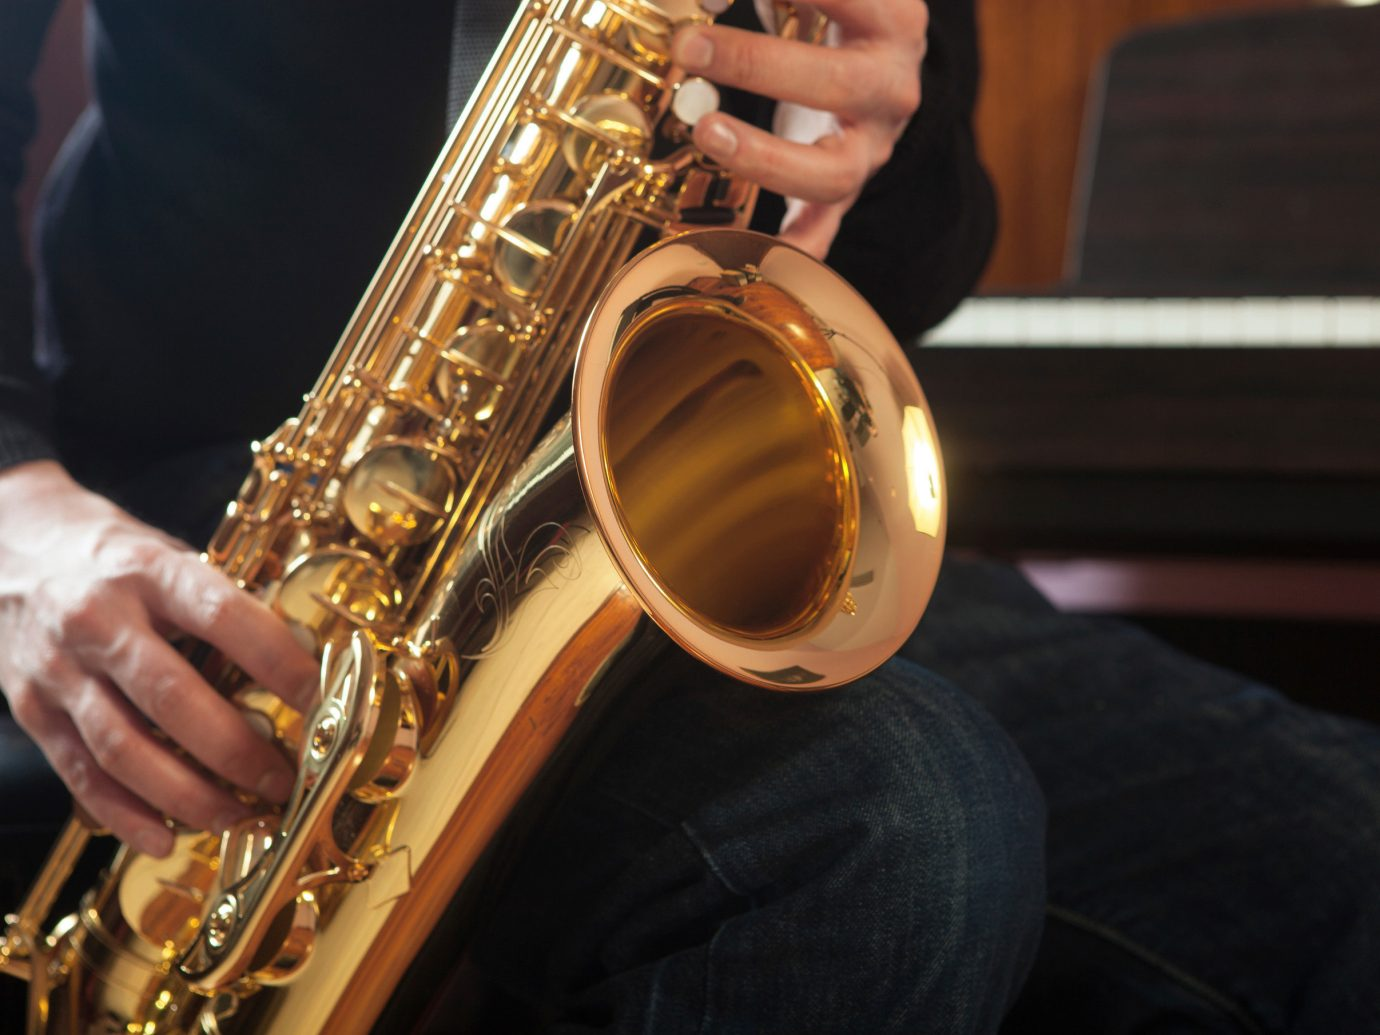 Trip Ideas person Music saxophone saxophonist indoor slide guitar brass musical instrument string instrument baritone saxophone woodwind instrument bassist euphonium tuba brass instrument wind instrument bass guitar reed instrument jazz guitar sax